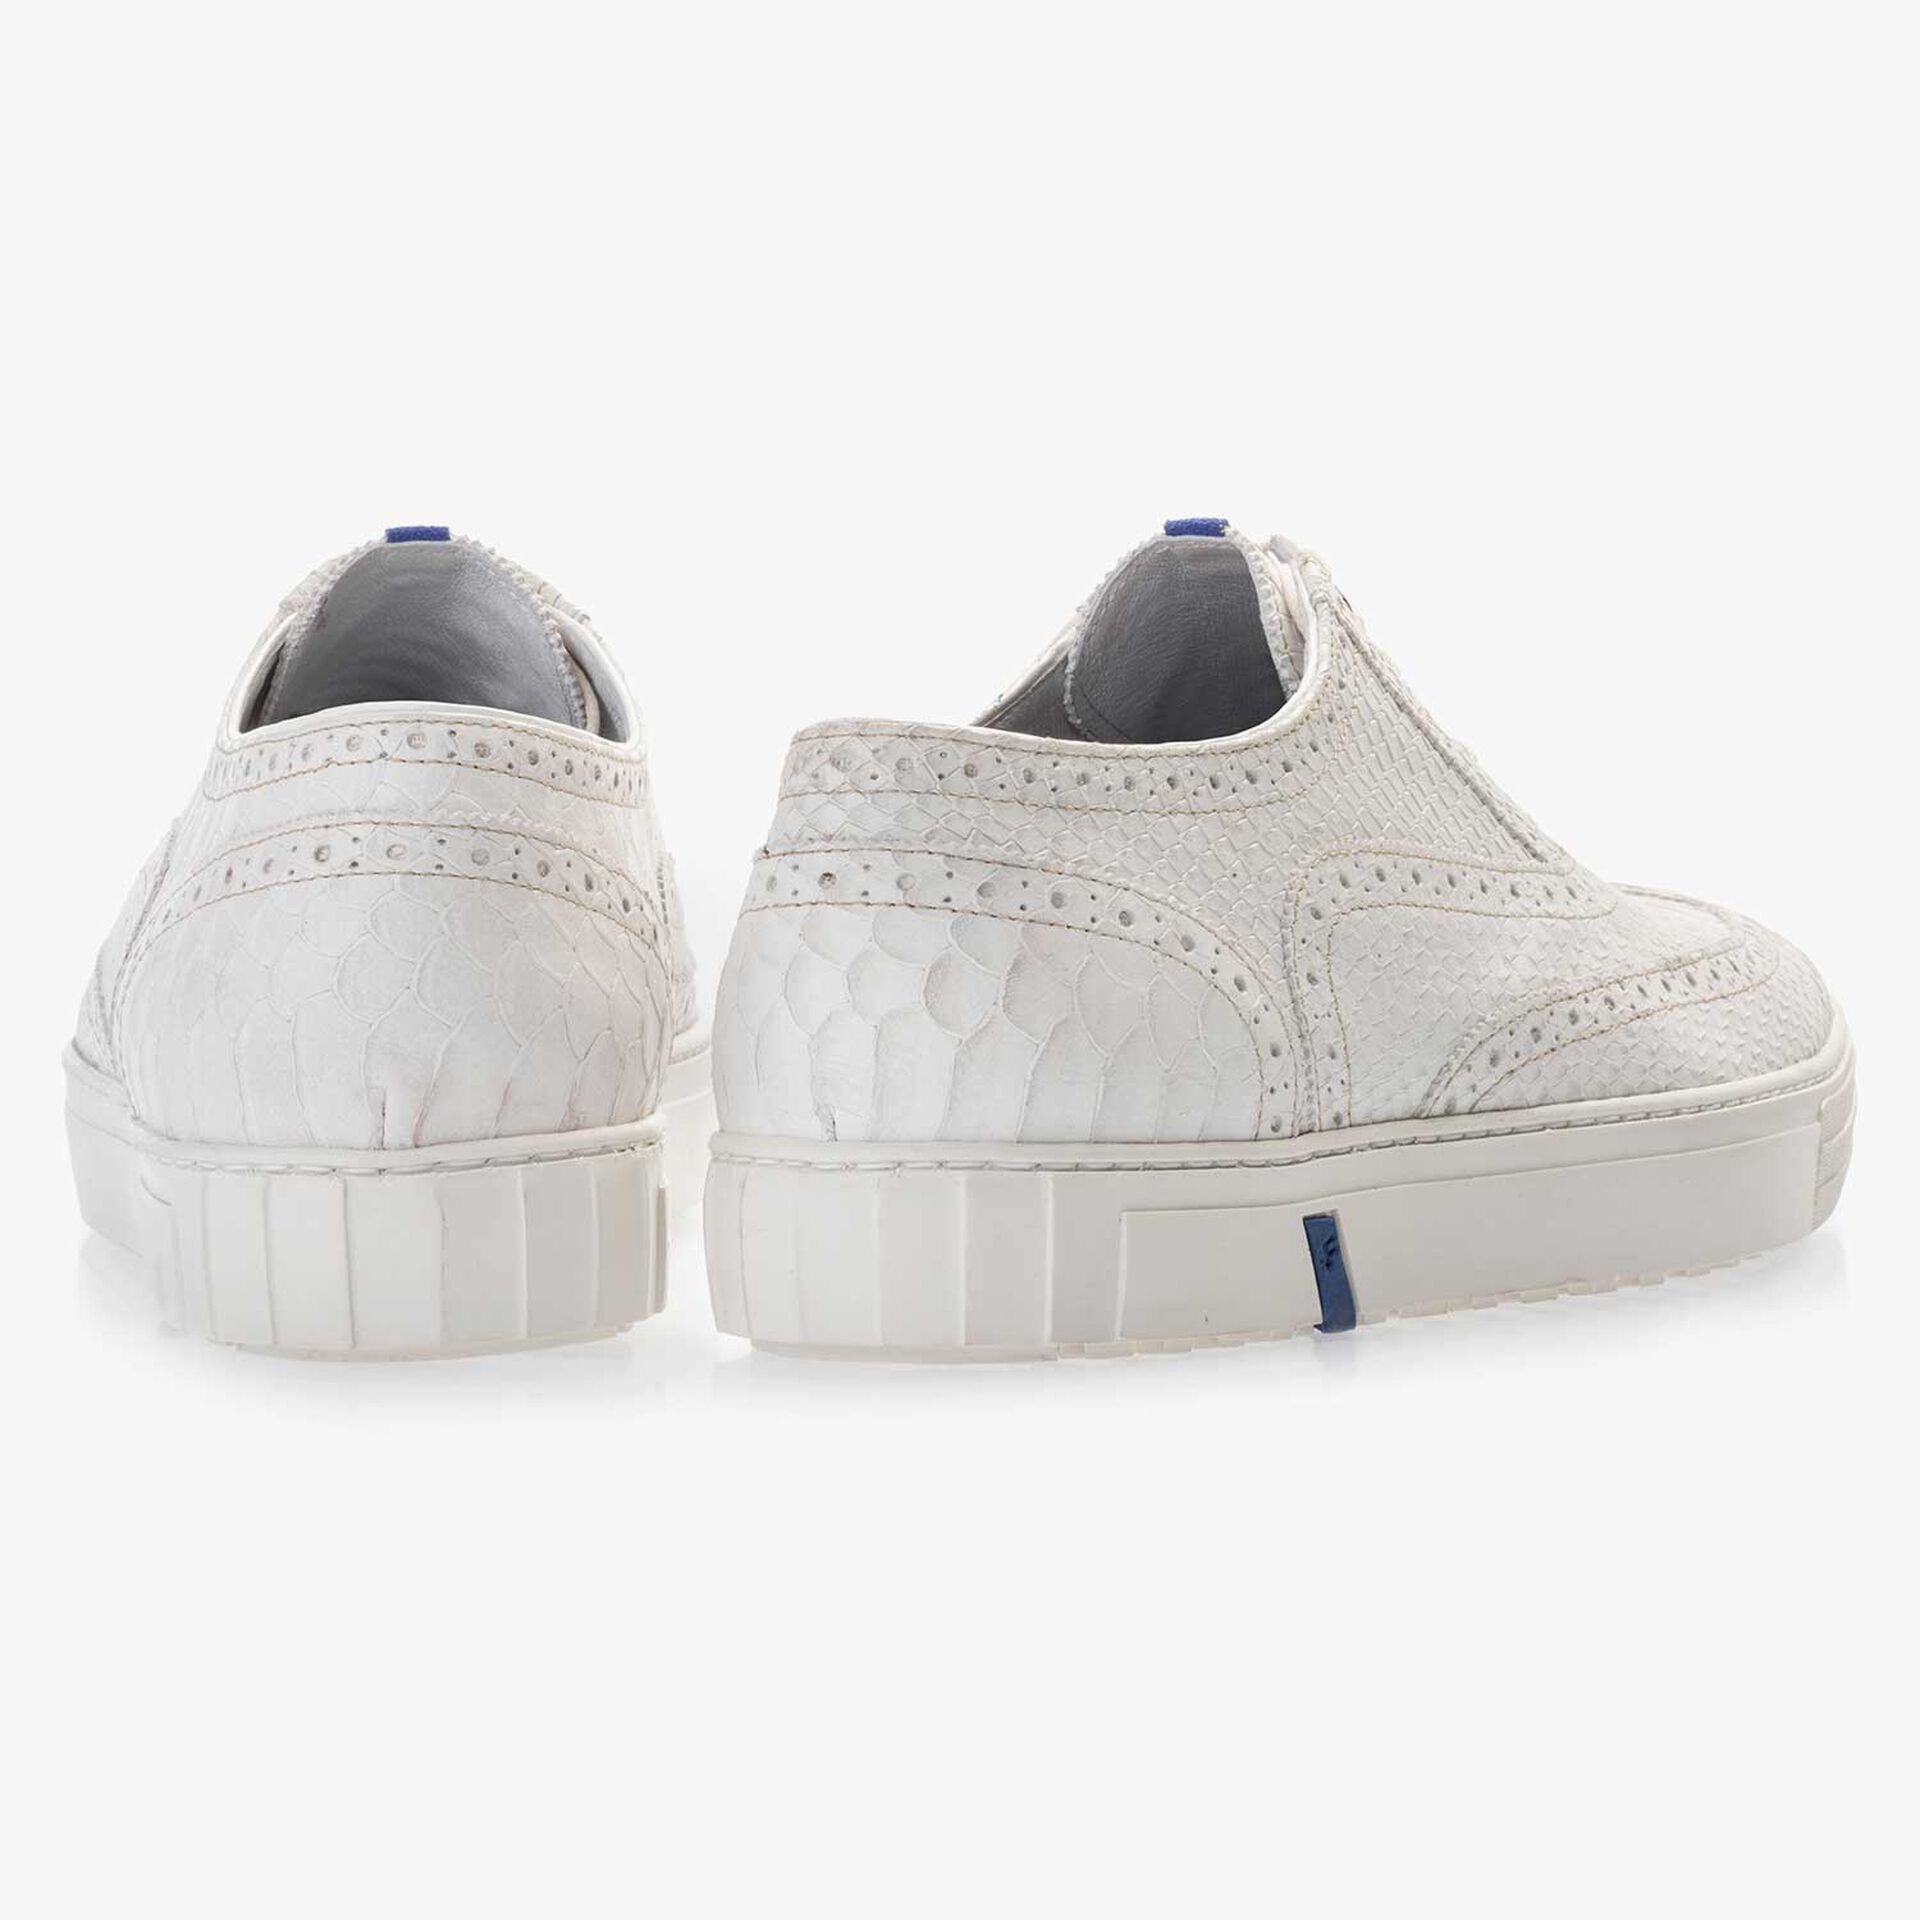 White brogue leather sneaker with a snake print